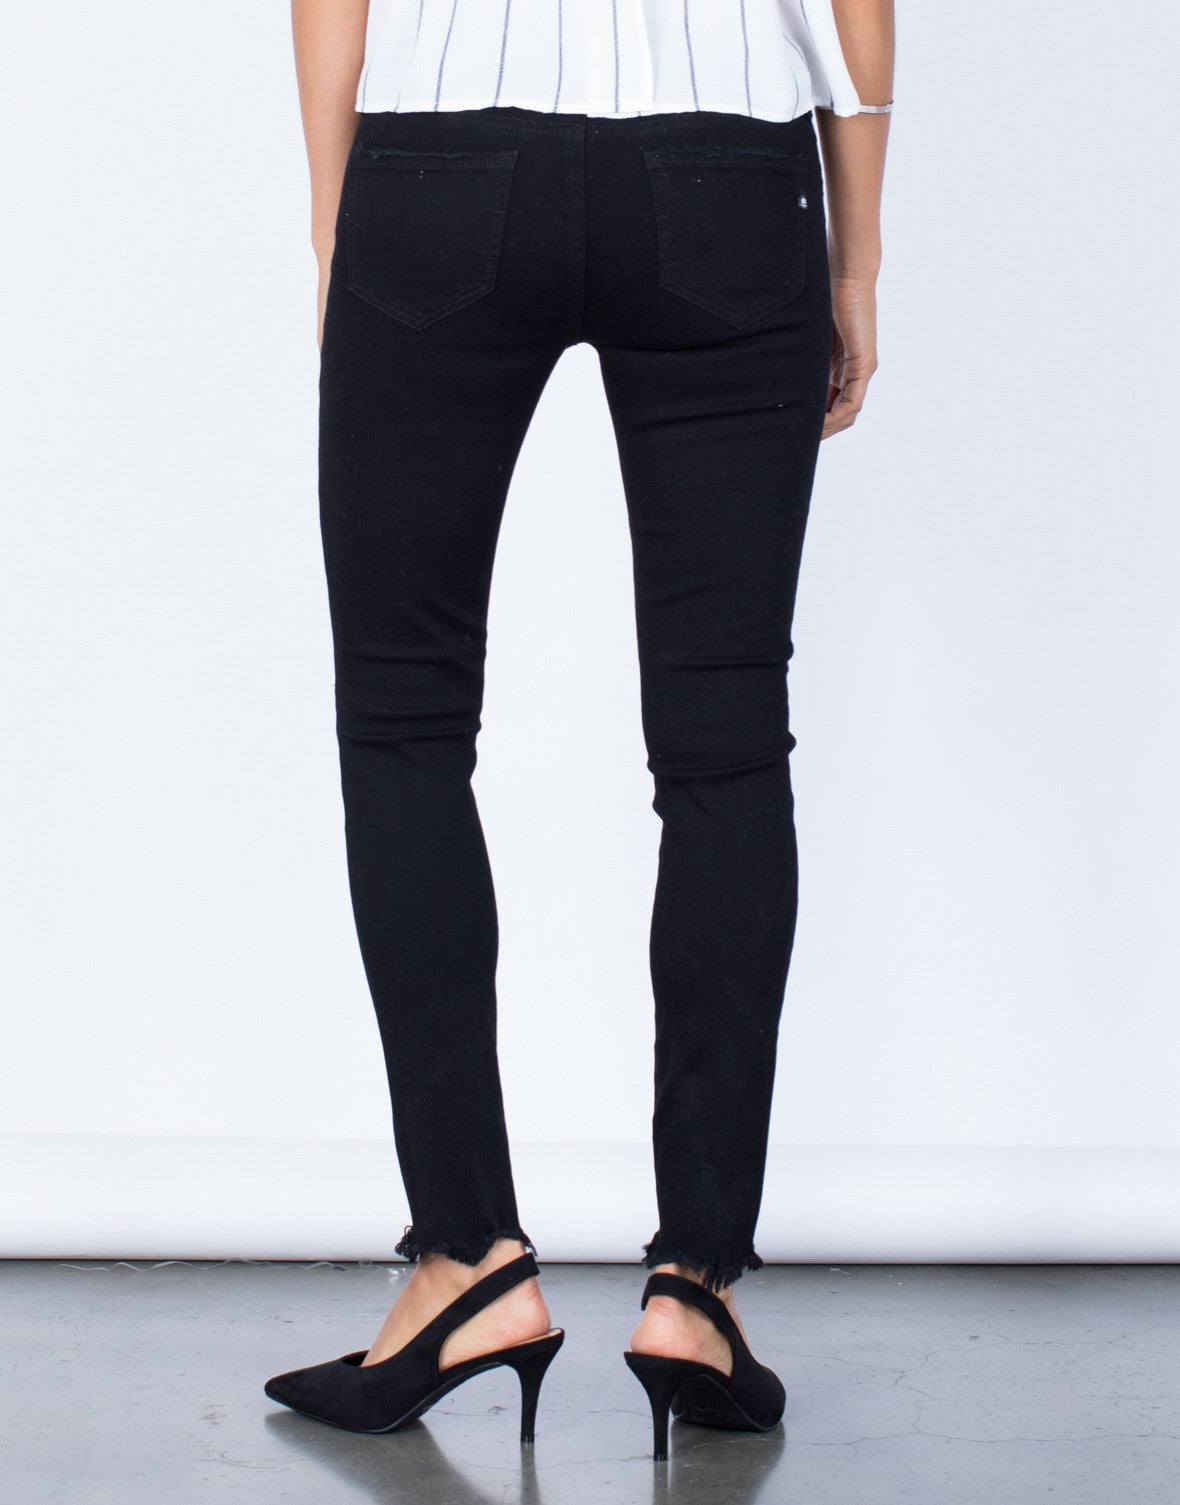 Back View of Cropped Out Skinny Jeans